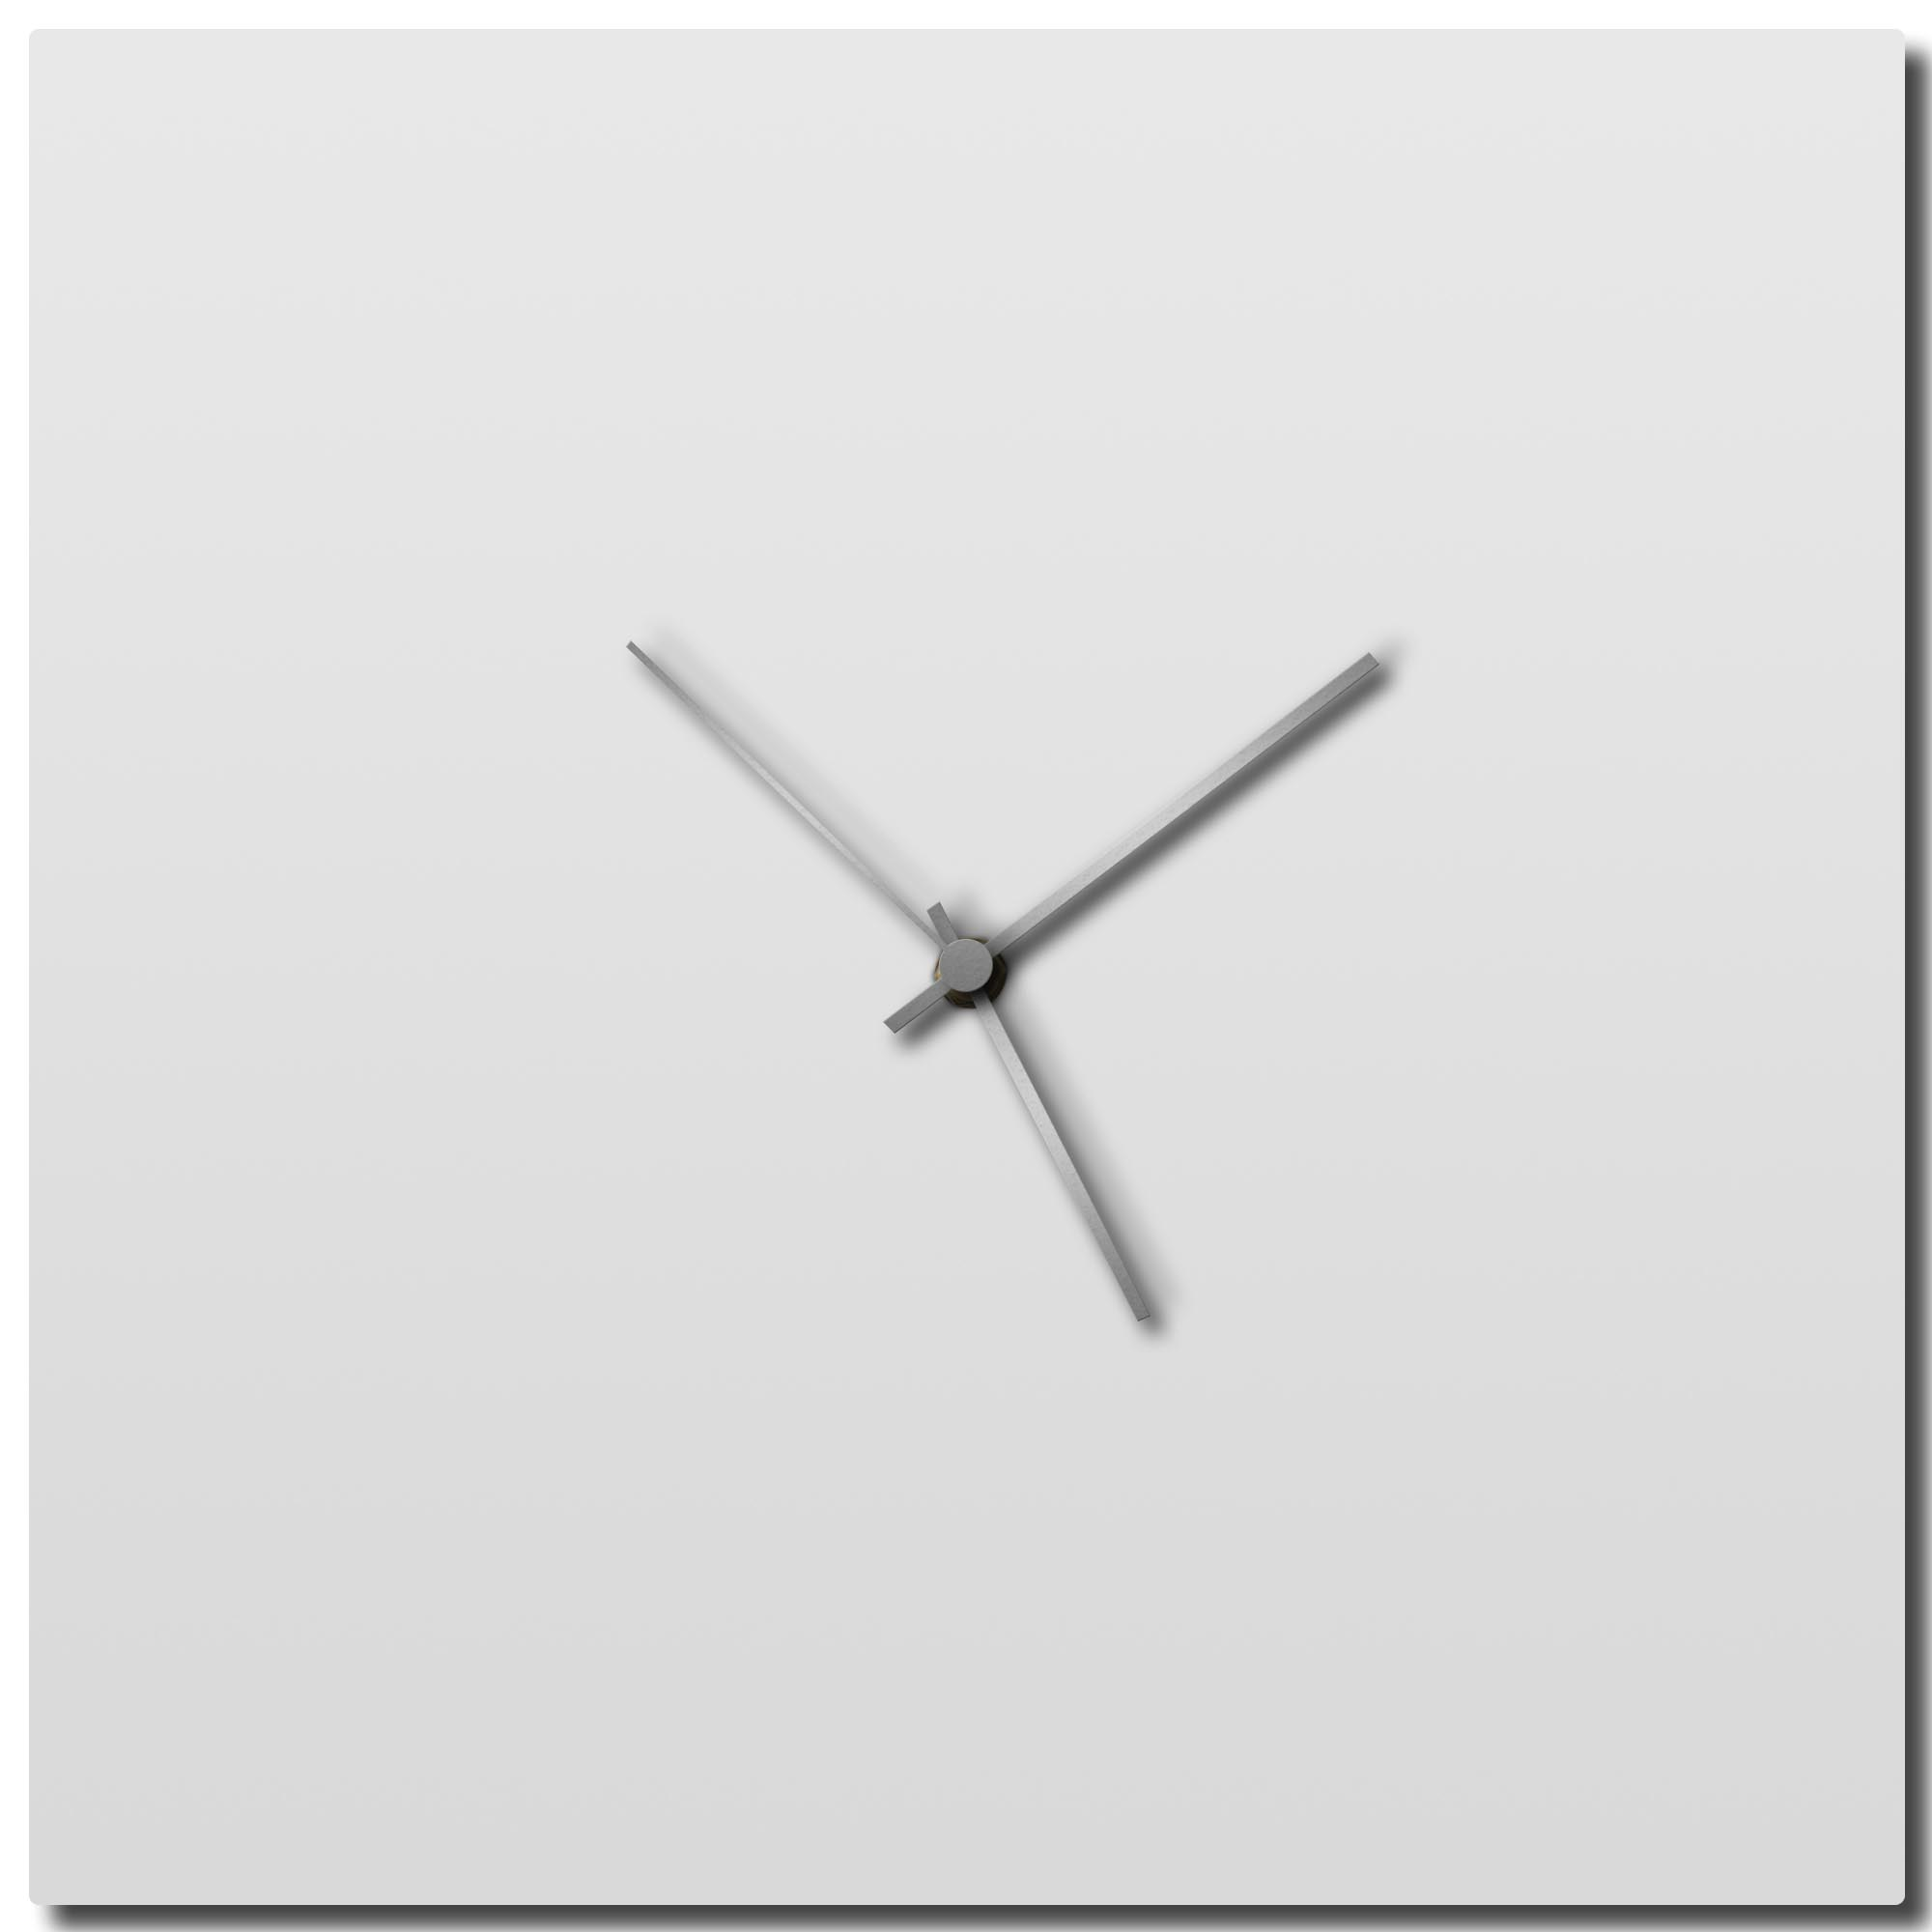 Metal Art Studio Whiteout Silver Square Clock By Adam Schwoeppe Modern Wall Clock On Brushed White Polymetal As0706sv